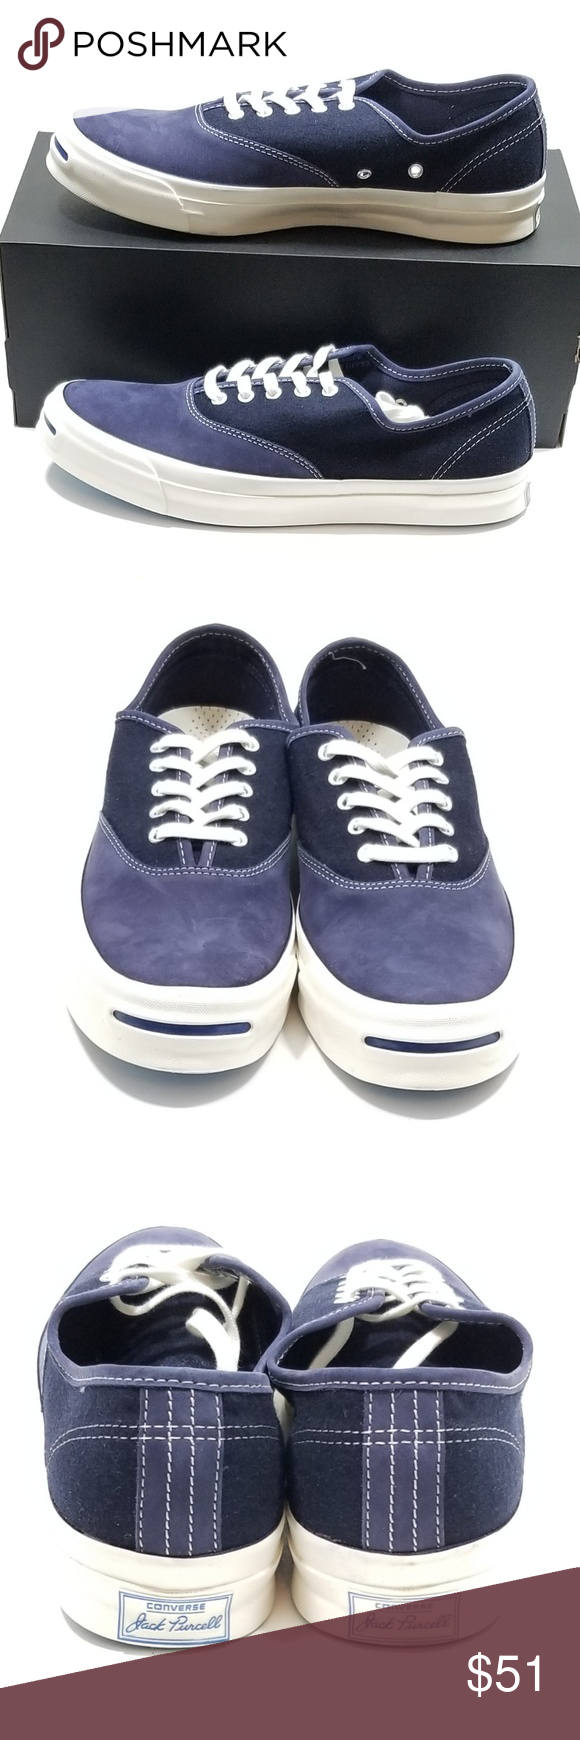 32f0d3fb97f3 CONVERSE JACK PURCELL SIGNATURE OX MEN SZ 11 CONVERSE JACK PURCELL  SIGNATURE CVO OX MEN SIZE 11 BLUE SUEDE NWOB Converse Shoes Sneakers